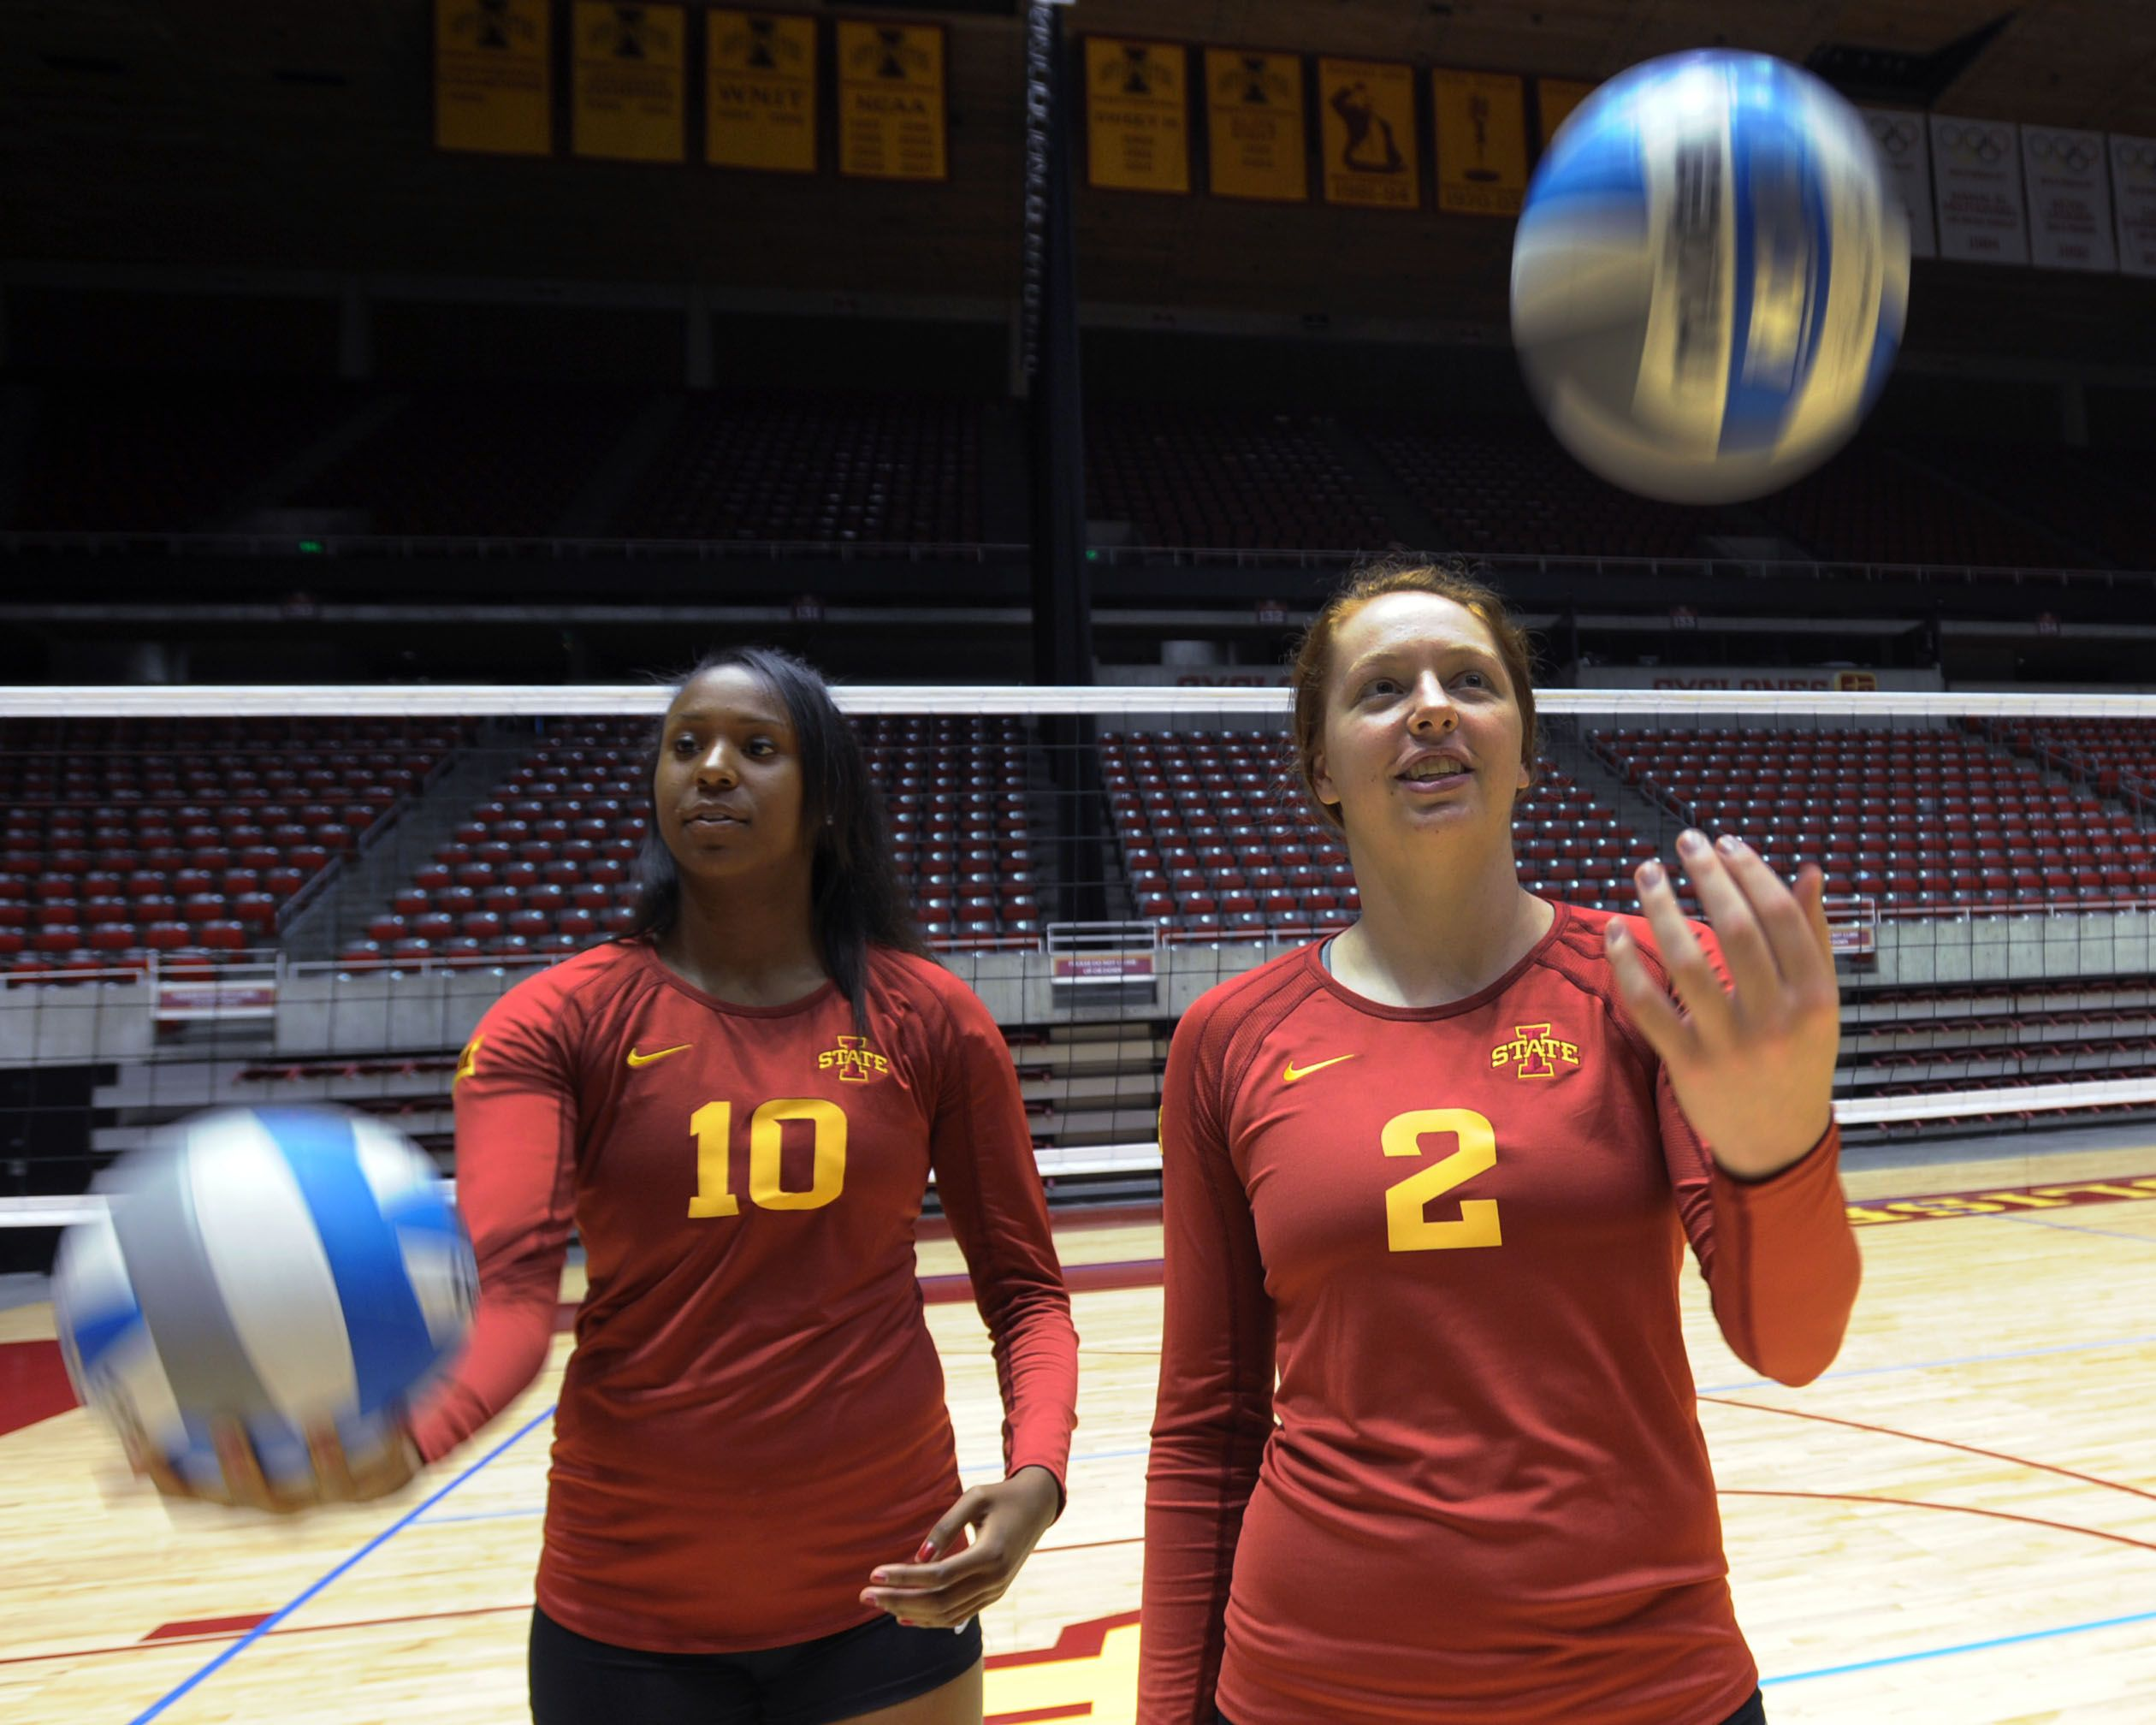 Iowa State S Victoria Hurtt And Mackenzie Bigbee Will Be Two Constants When The Volleyball Team Hits The Court T Iowa State Cyclones Volleyball Team Iowa State